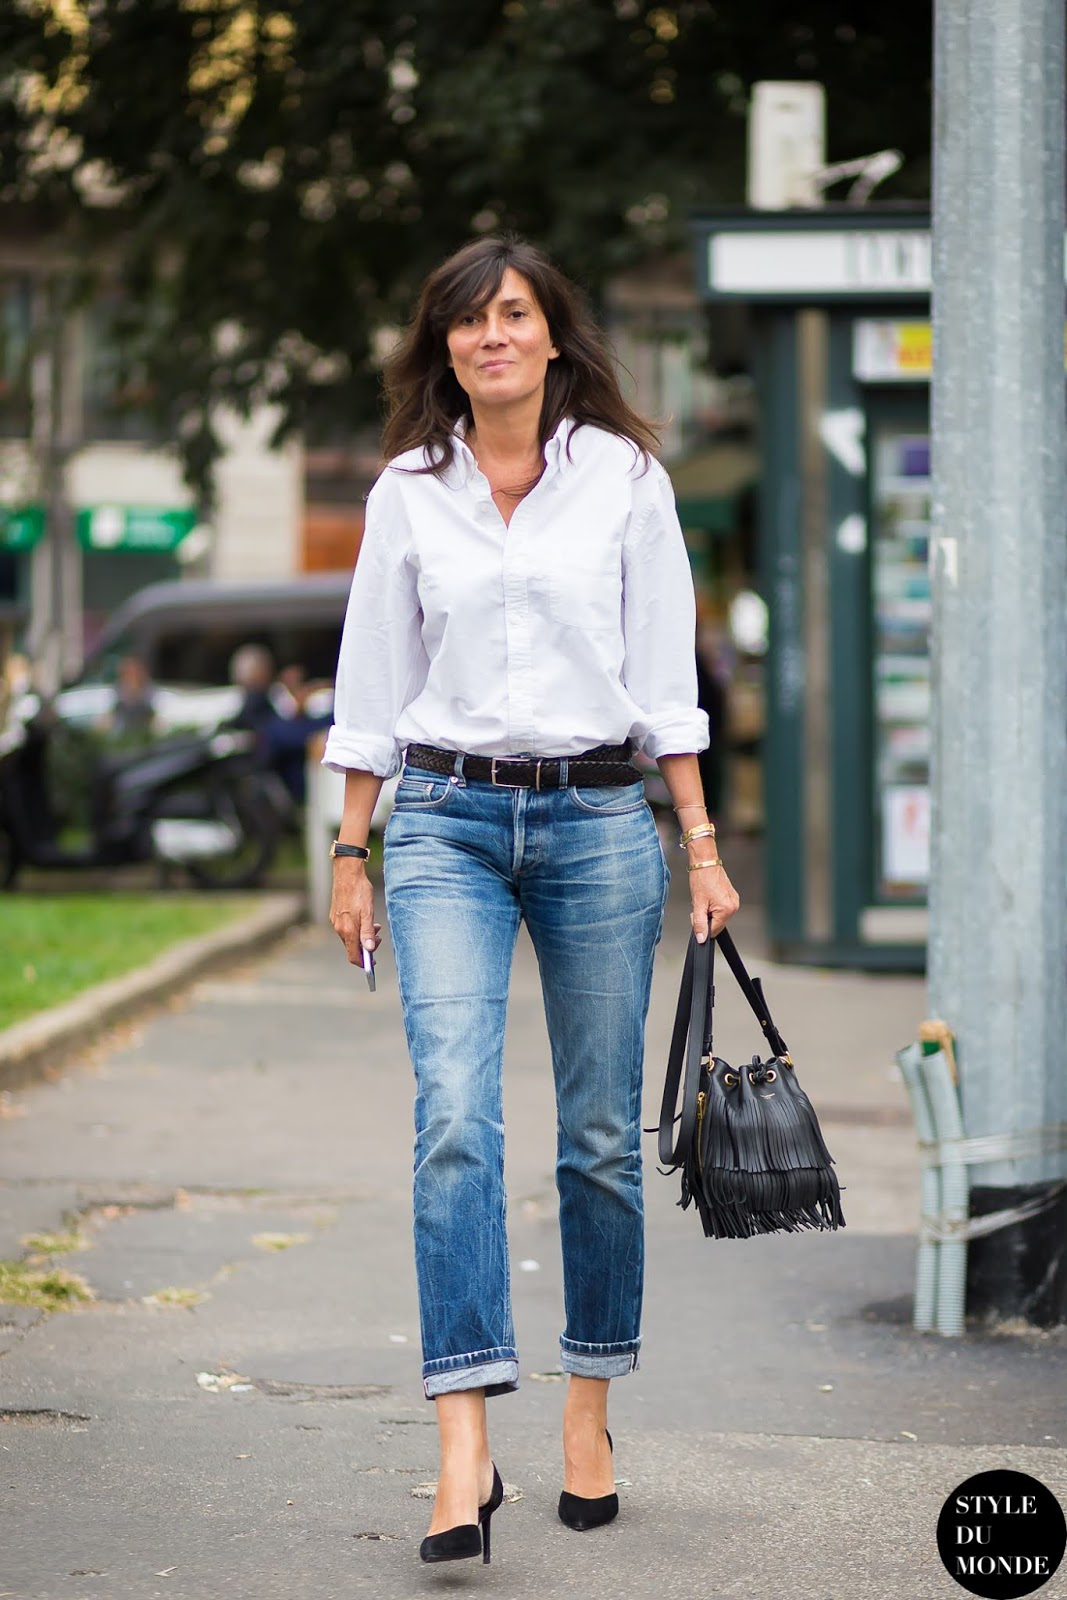 Wear These 3 Easy Basics for the Perfect French-Girl Outfit